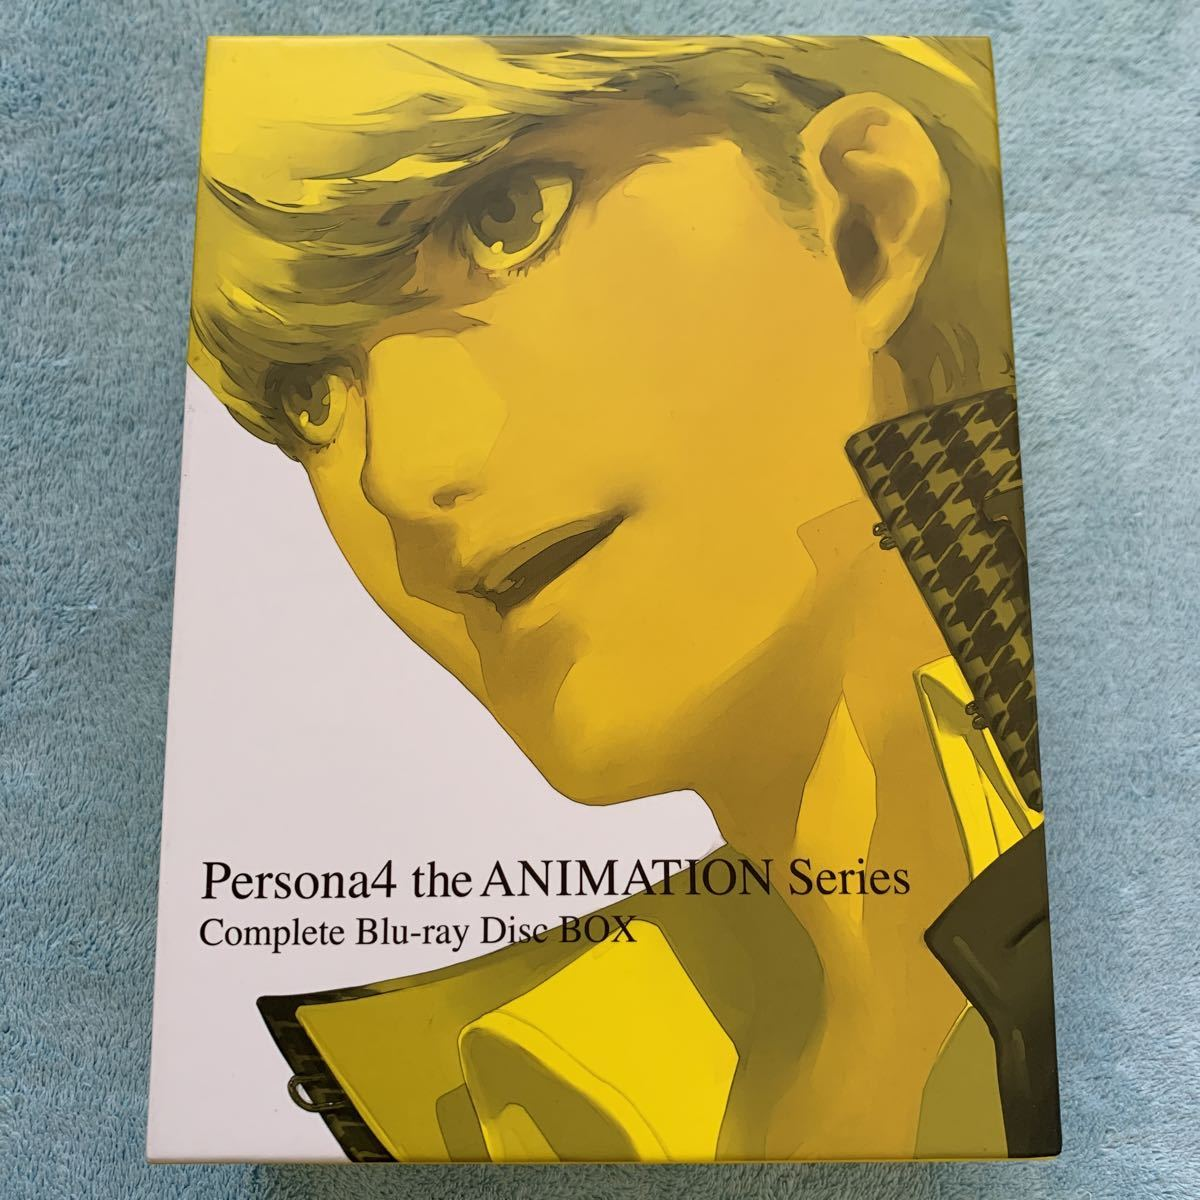 Persona4 the ANIMATION Series Complete Blu-ray Disc BOX 完全生産限定版